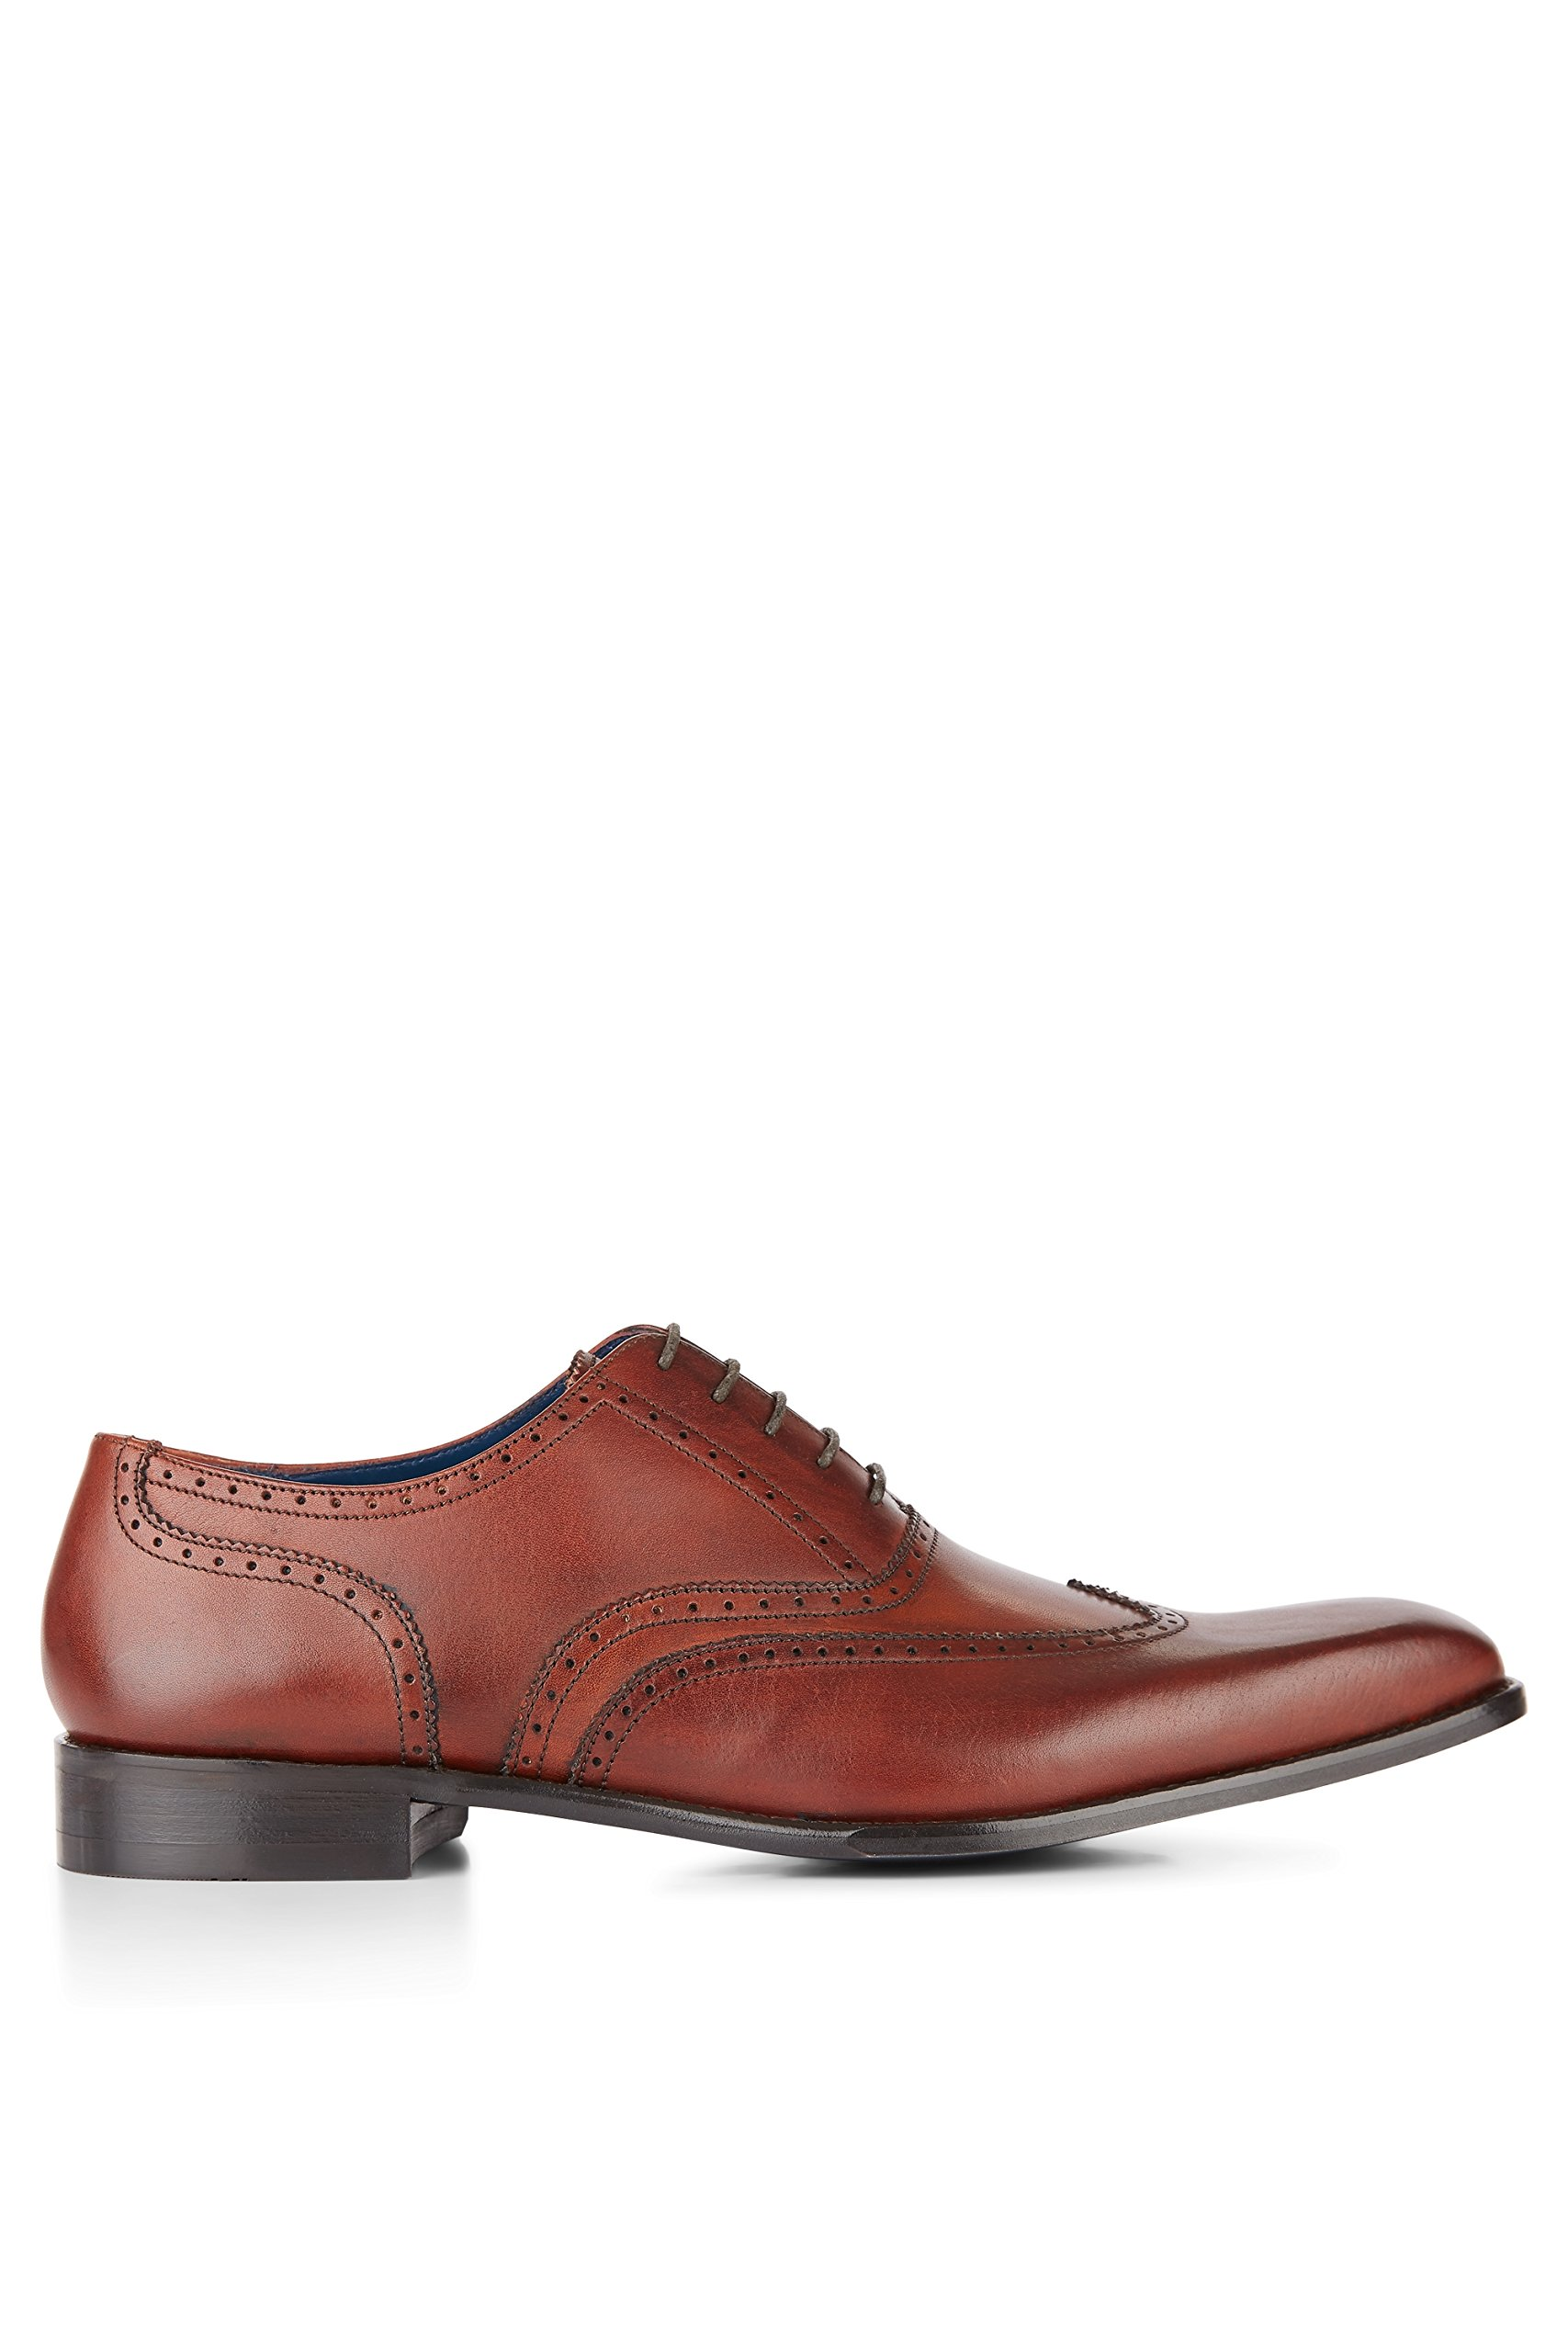 Moss 1851 Men's Charles Red Wing Tip Brogue 12.5 by Moss 1851